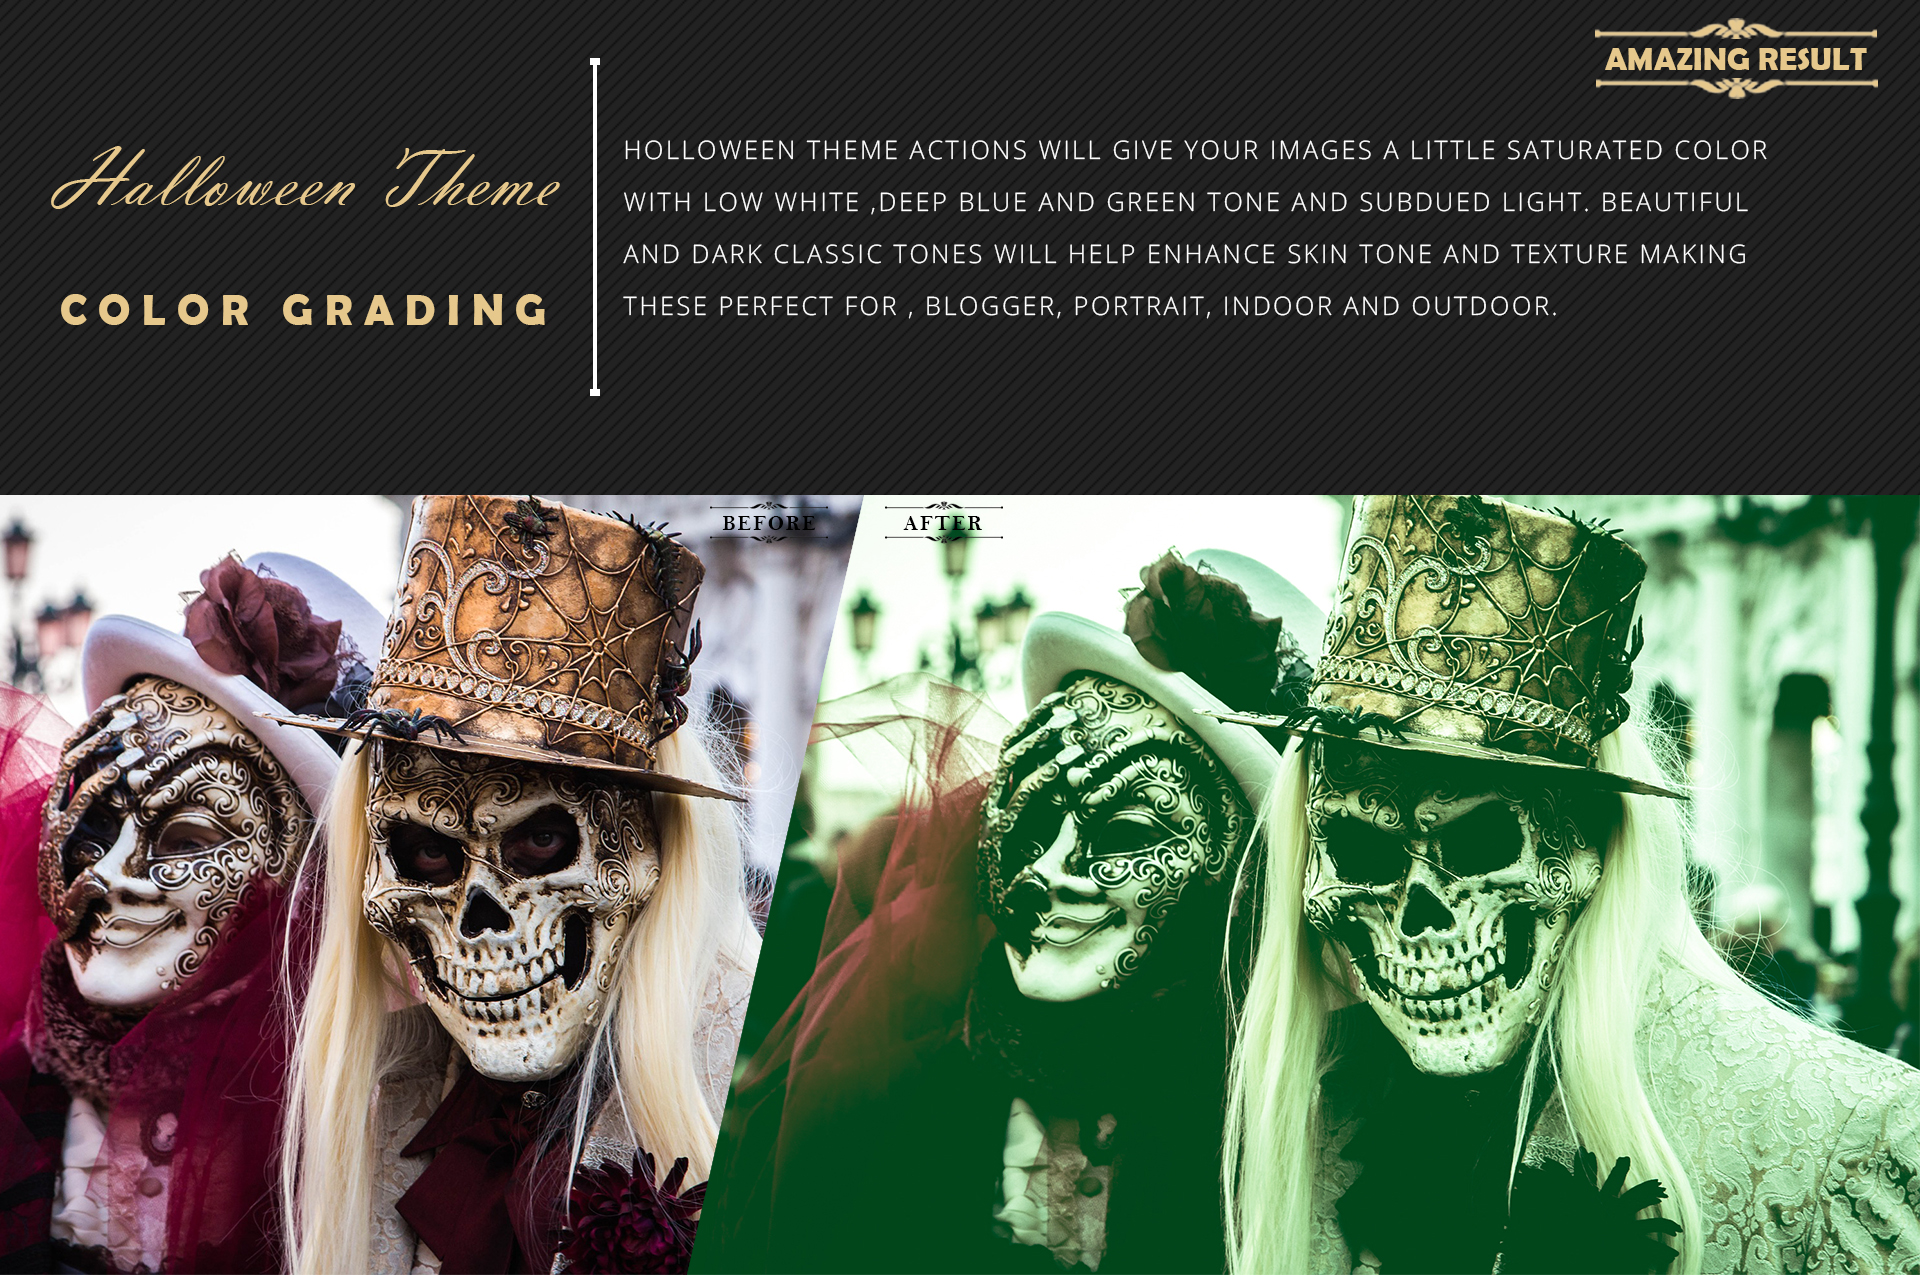 Halloween Theme color grading Photoshop Actions example image 4